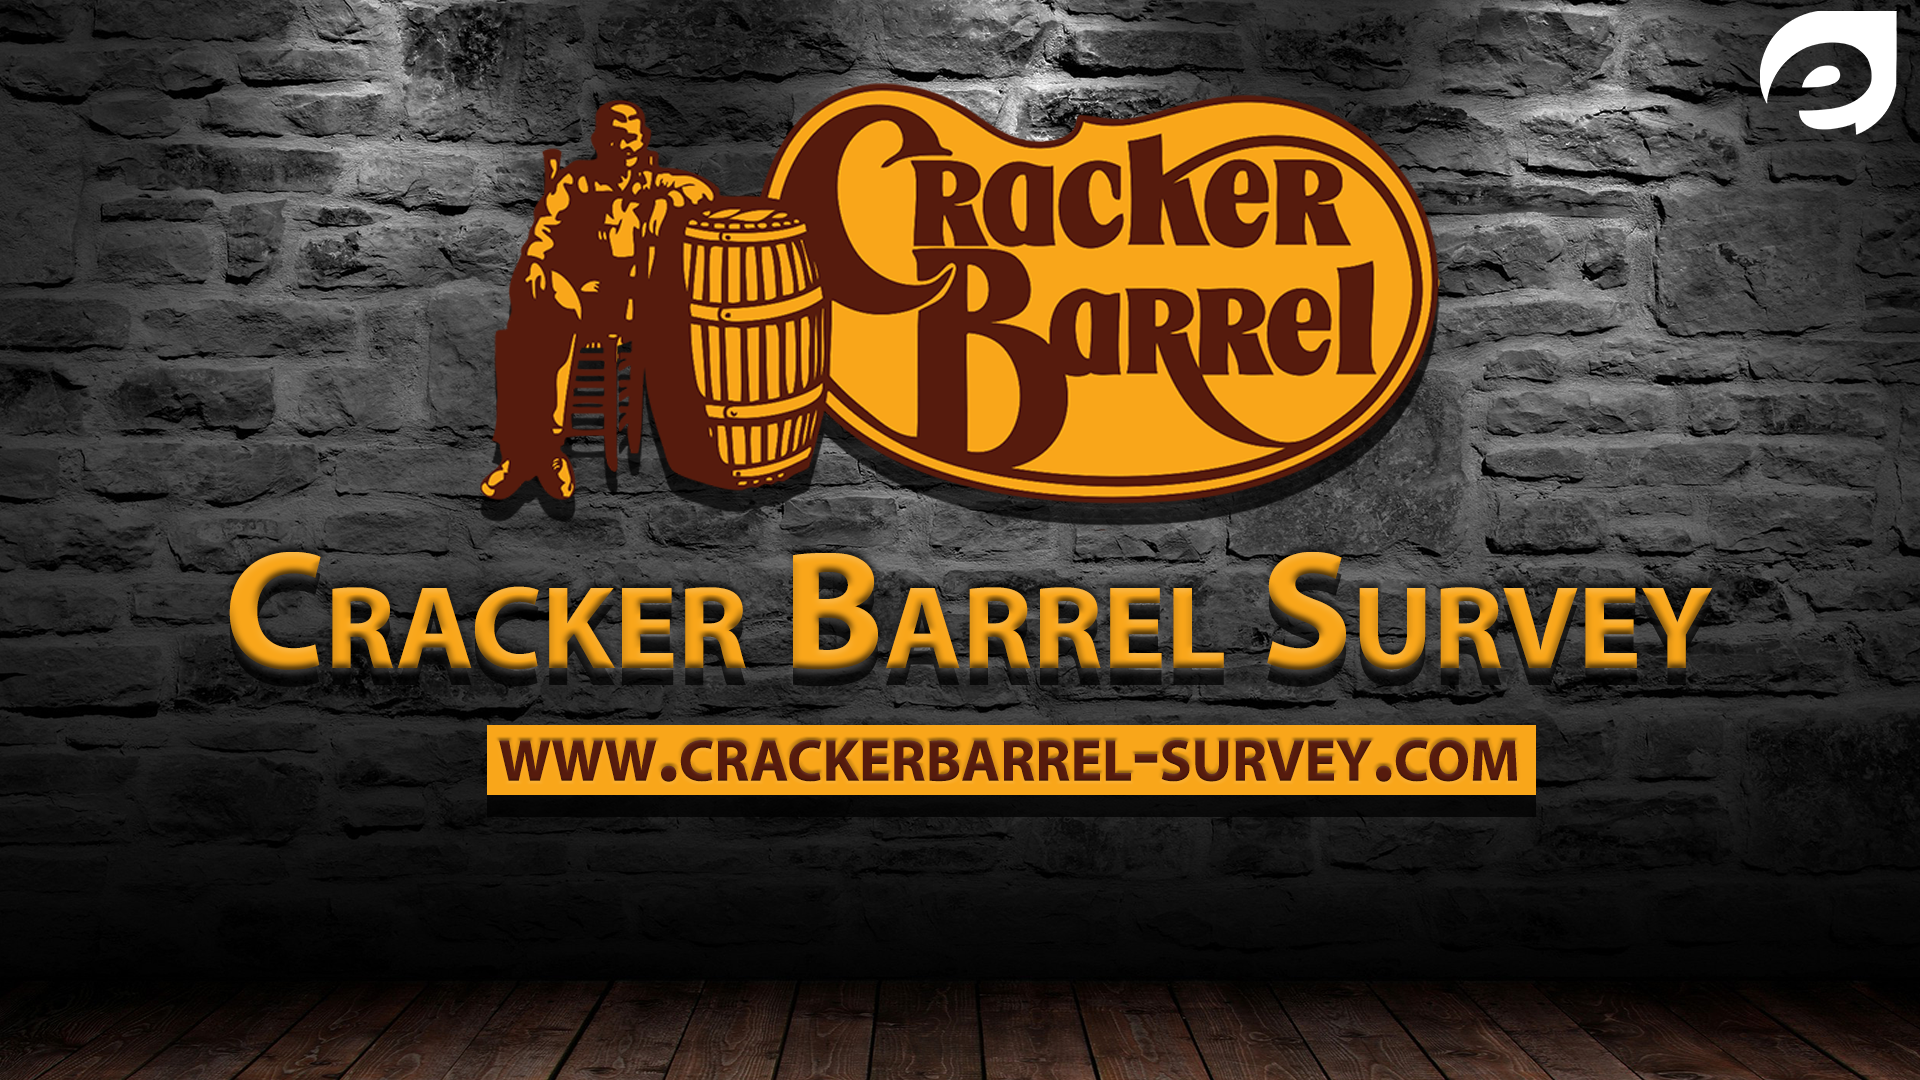 Cracker Barrel Survey@www.crackerbarrel-survey.com